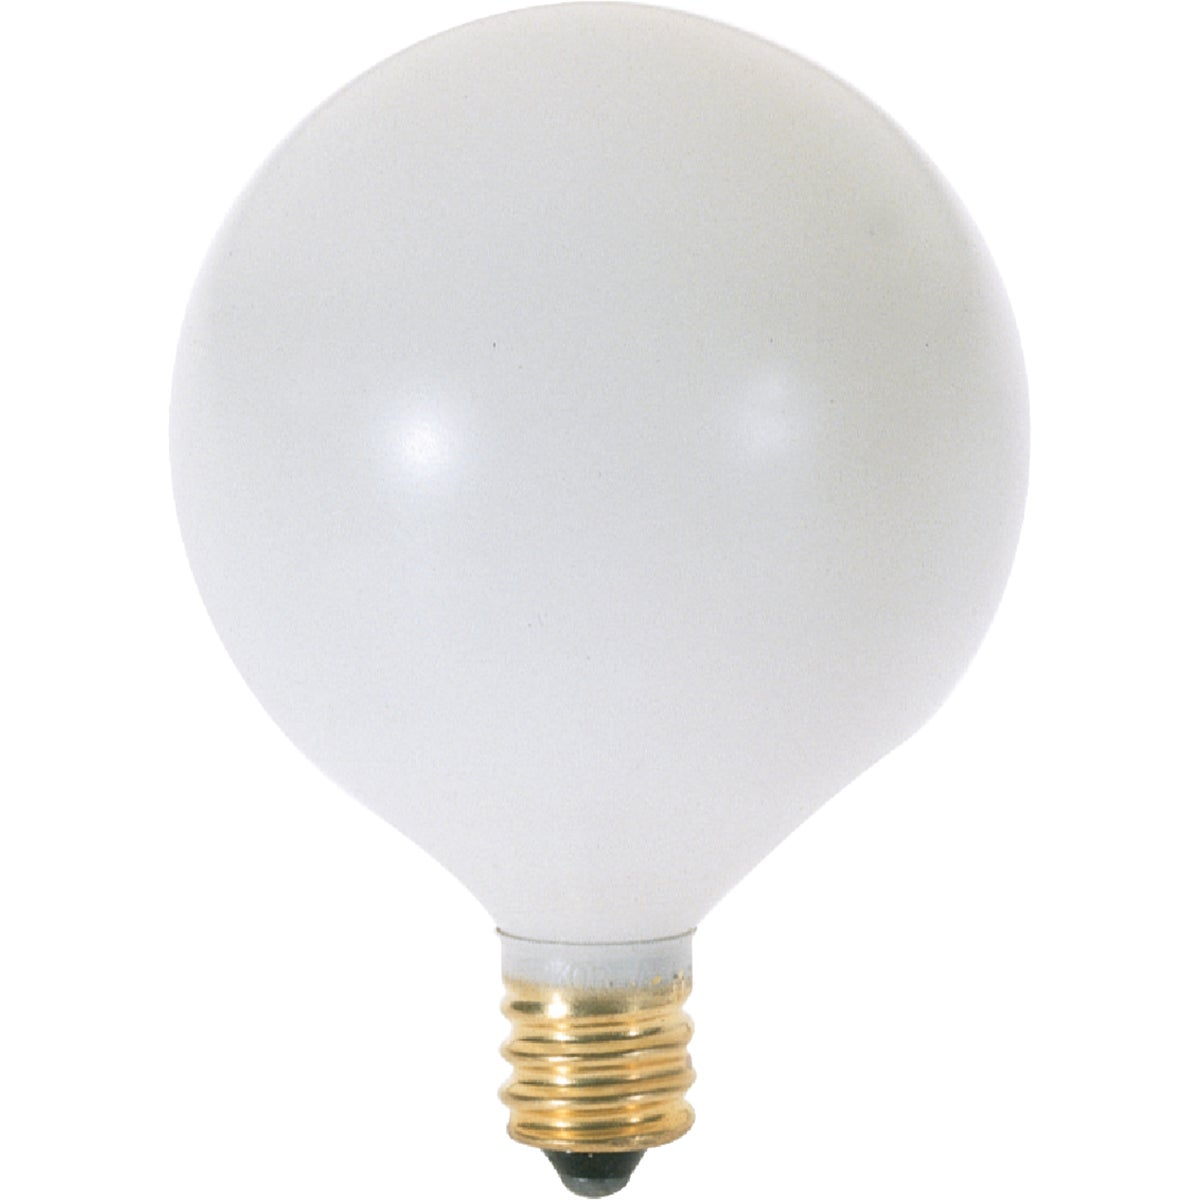 60W WHT 2-1/16GLOBE BULB - 44723 by G E Lighting